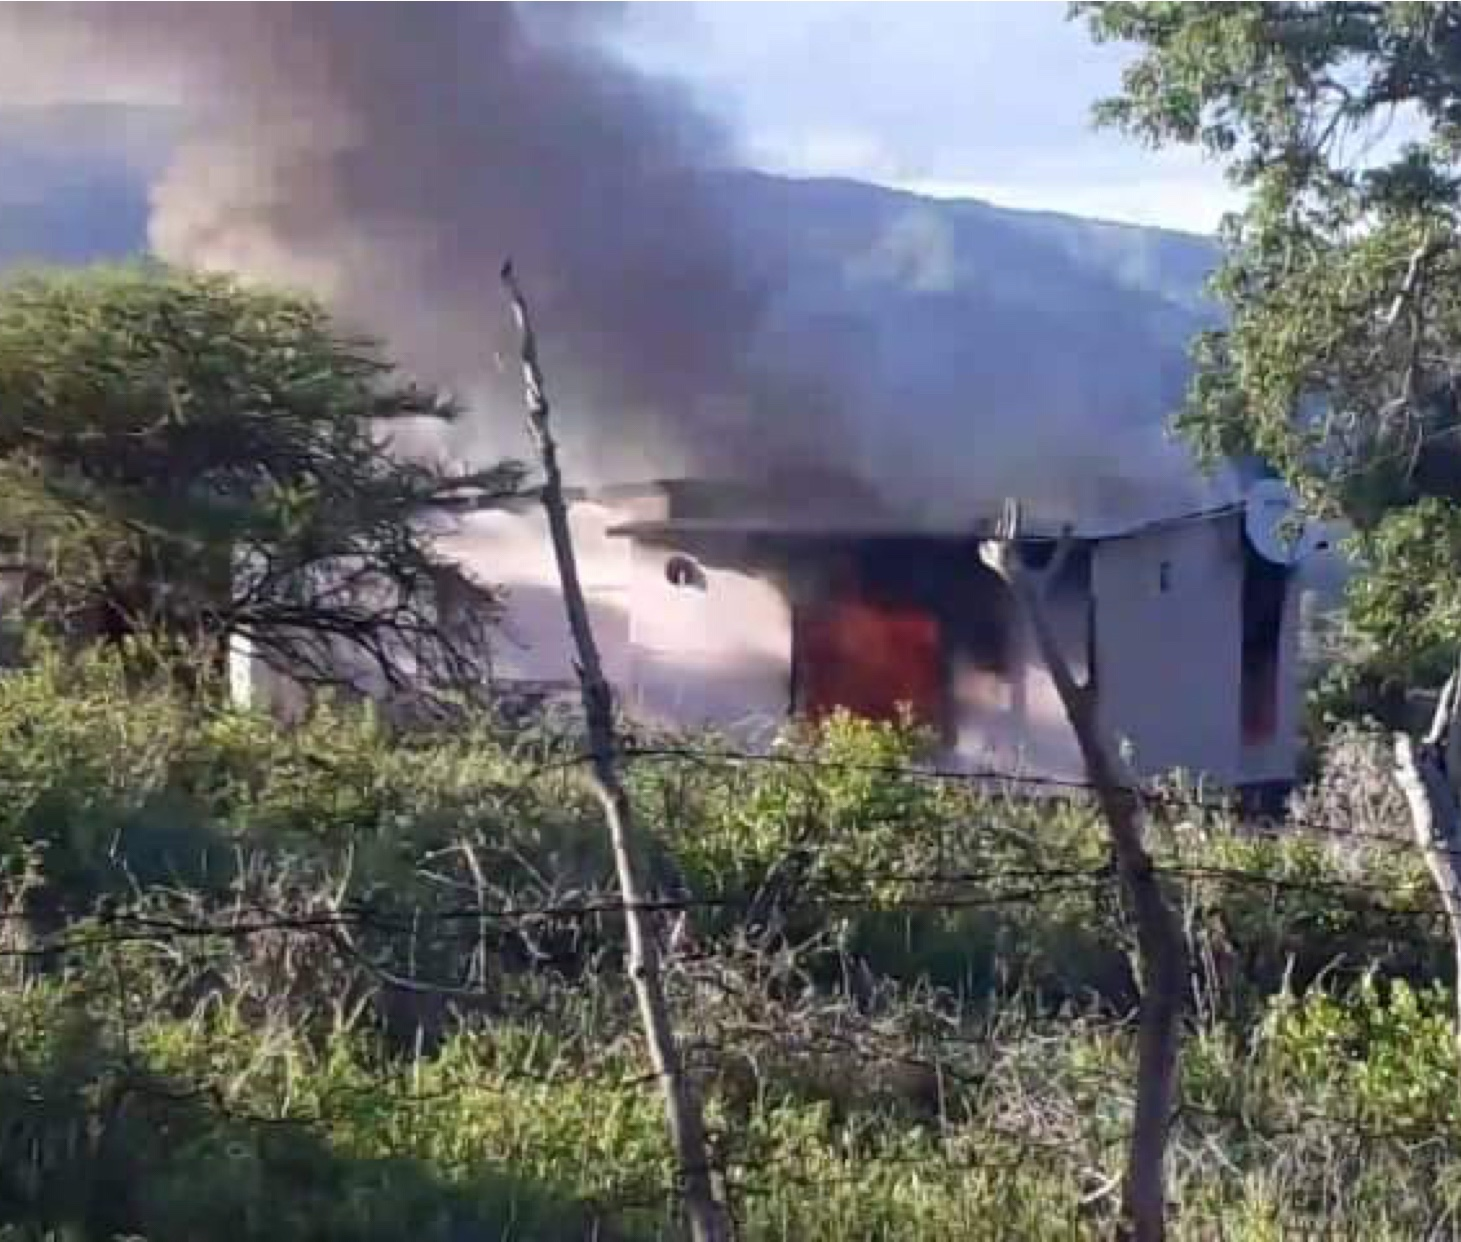 Buseleni residents burn home of suspect implicated in the disappearance of two minor children during Incwala ceremony.